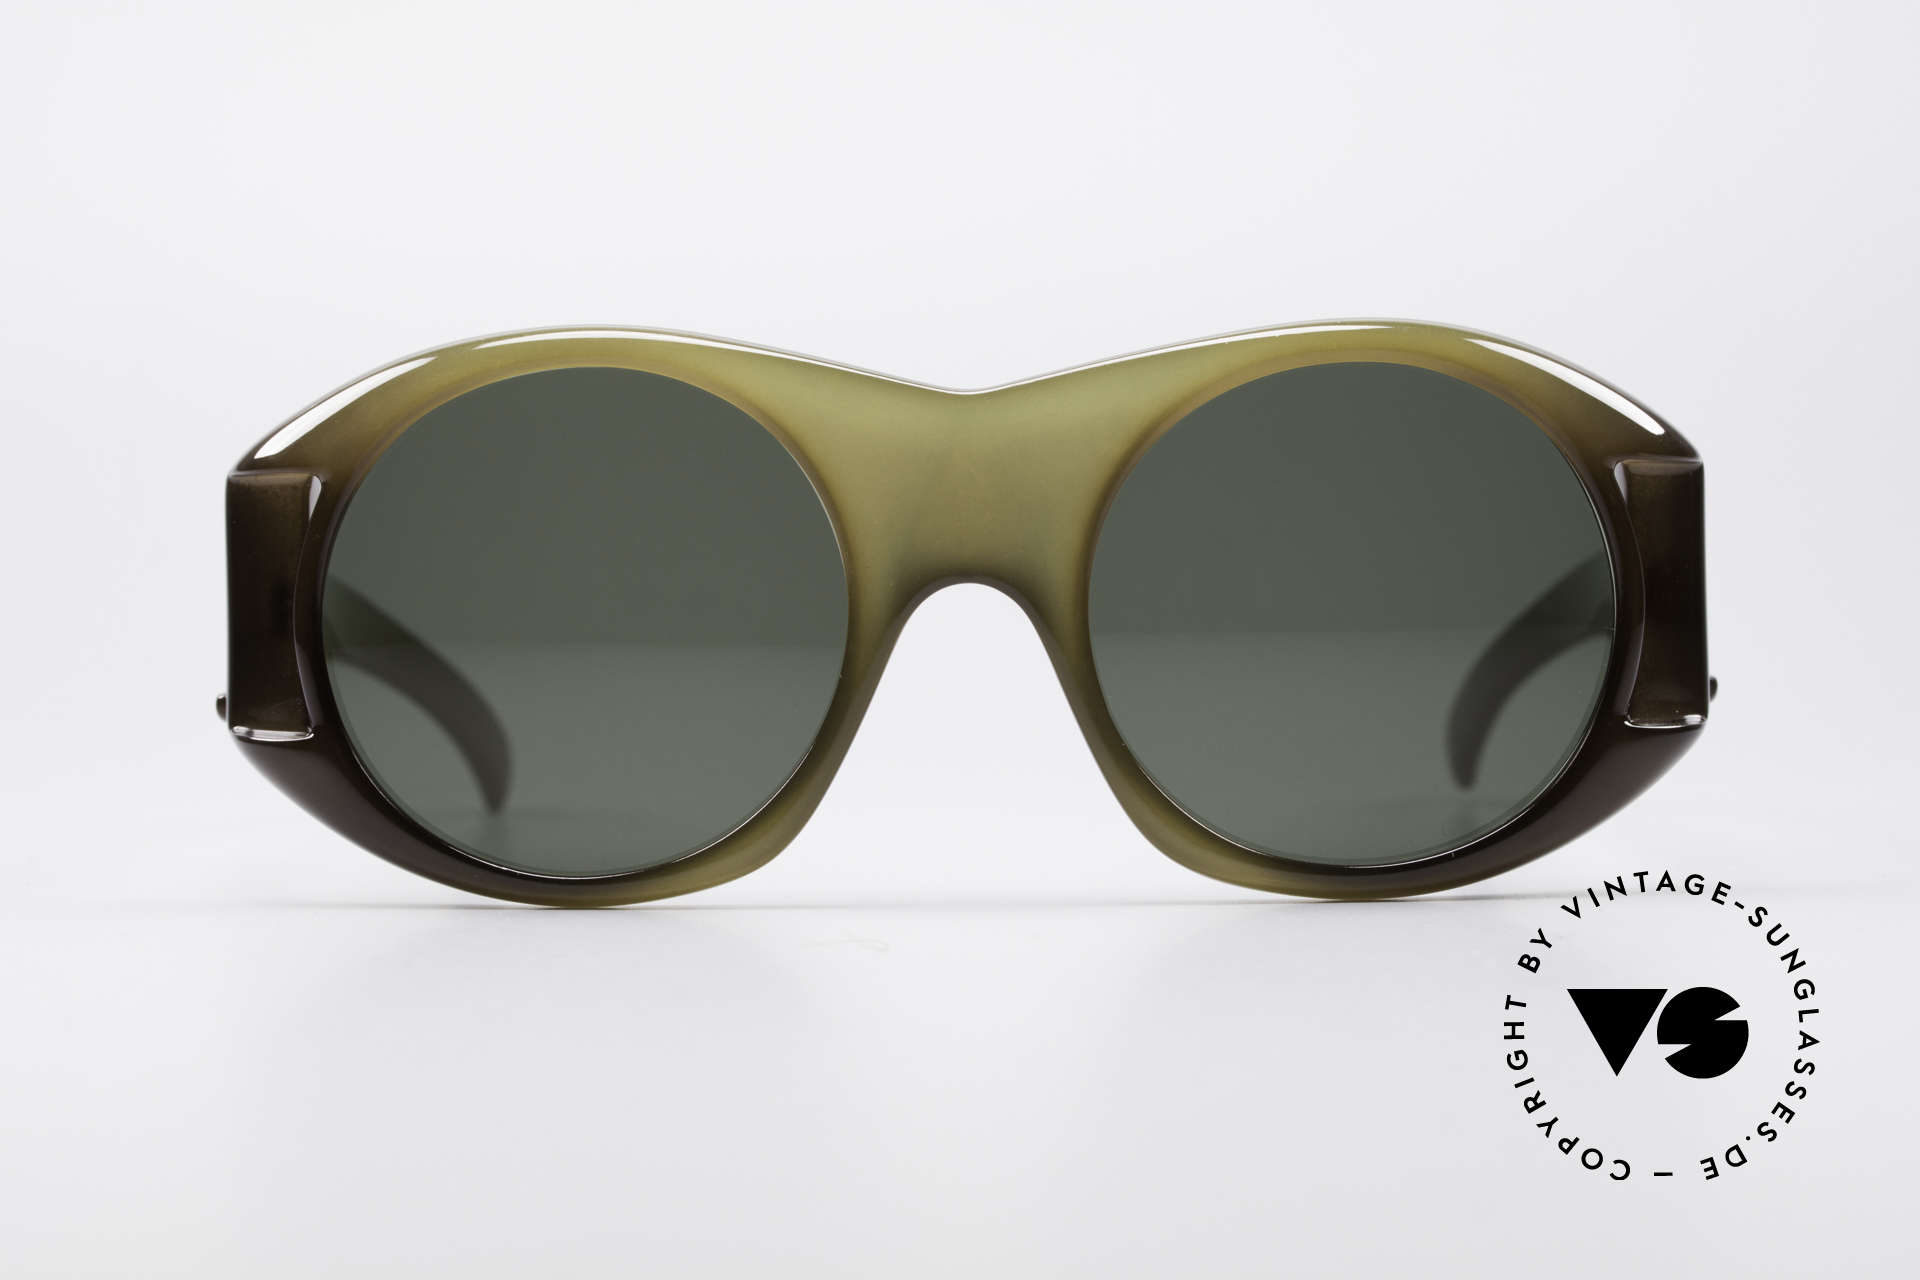 Christian Dior C61 Rare 70's Optyl Sunglasses, one of the first sunglass' models by Christian Dior, ever, Made for Men and Women